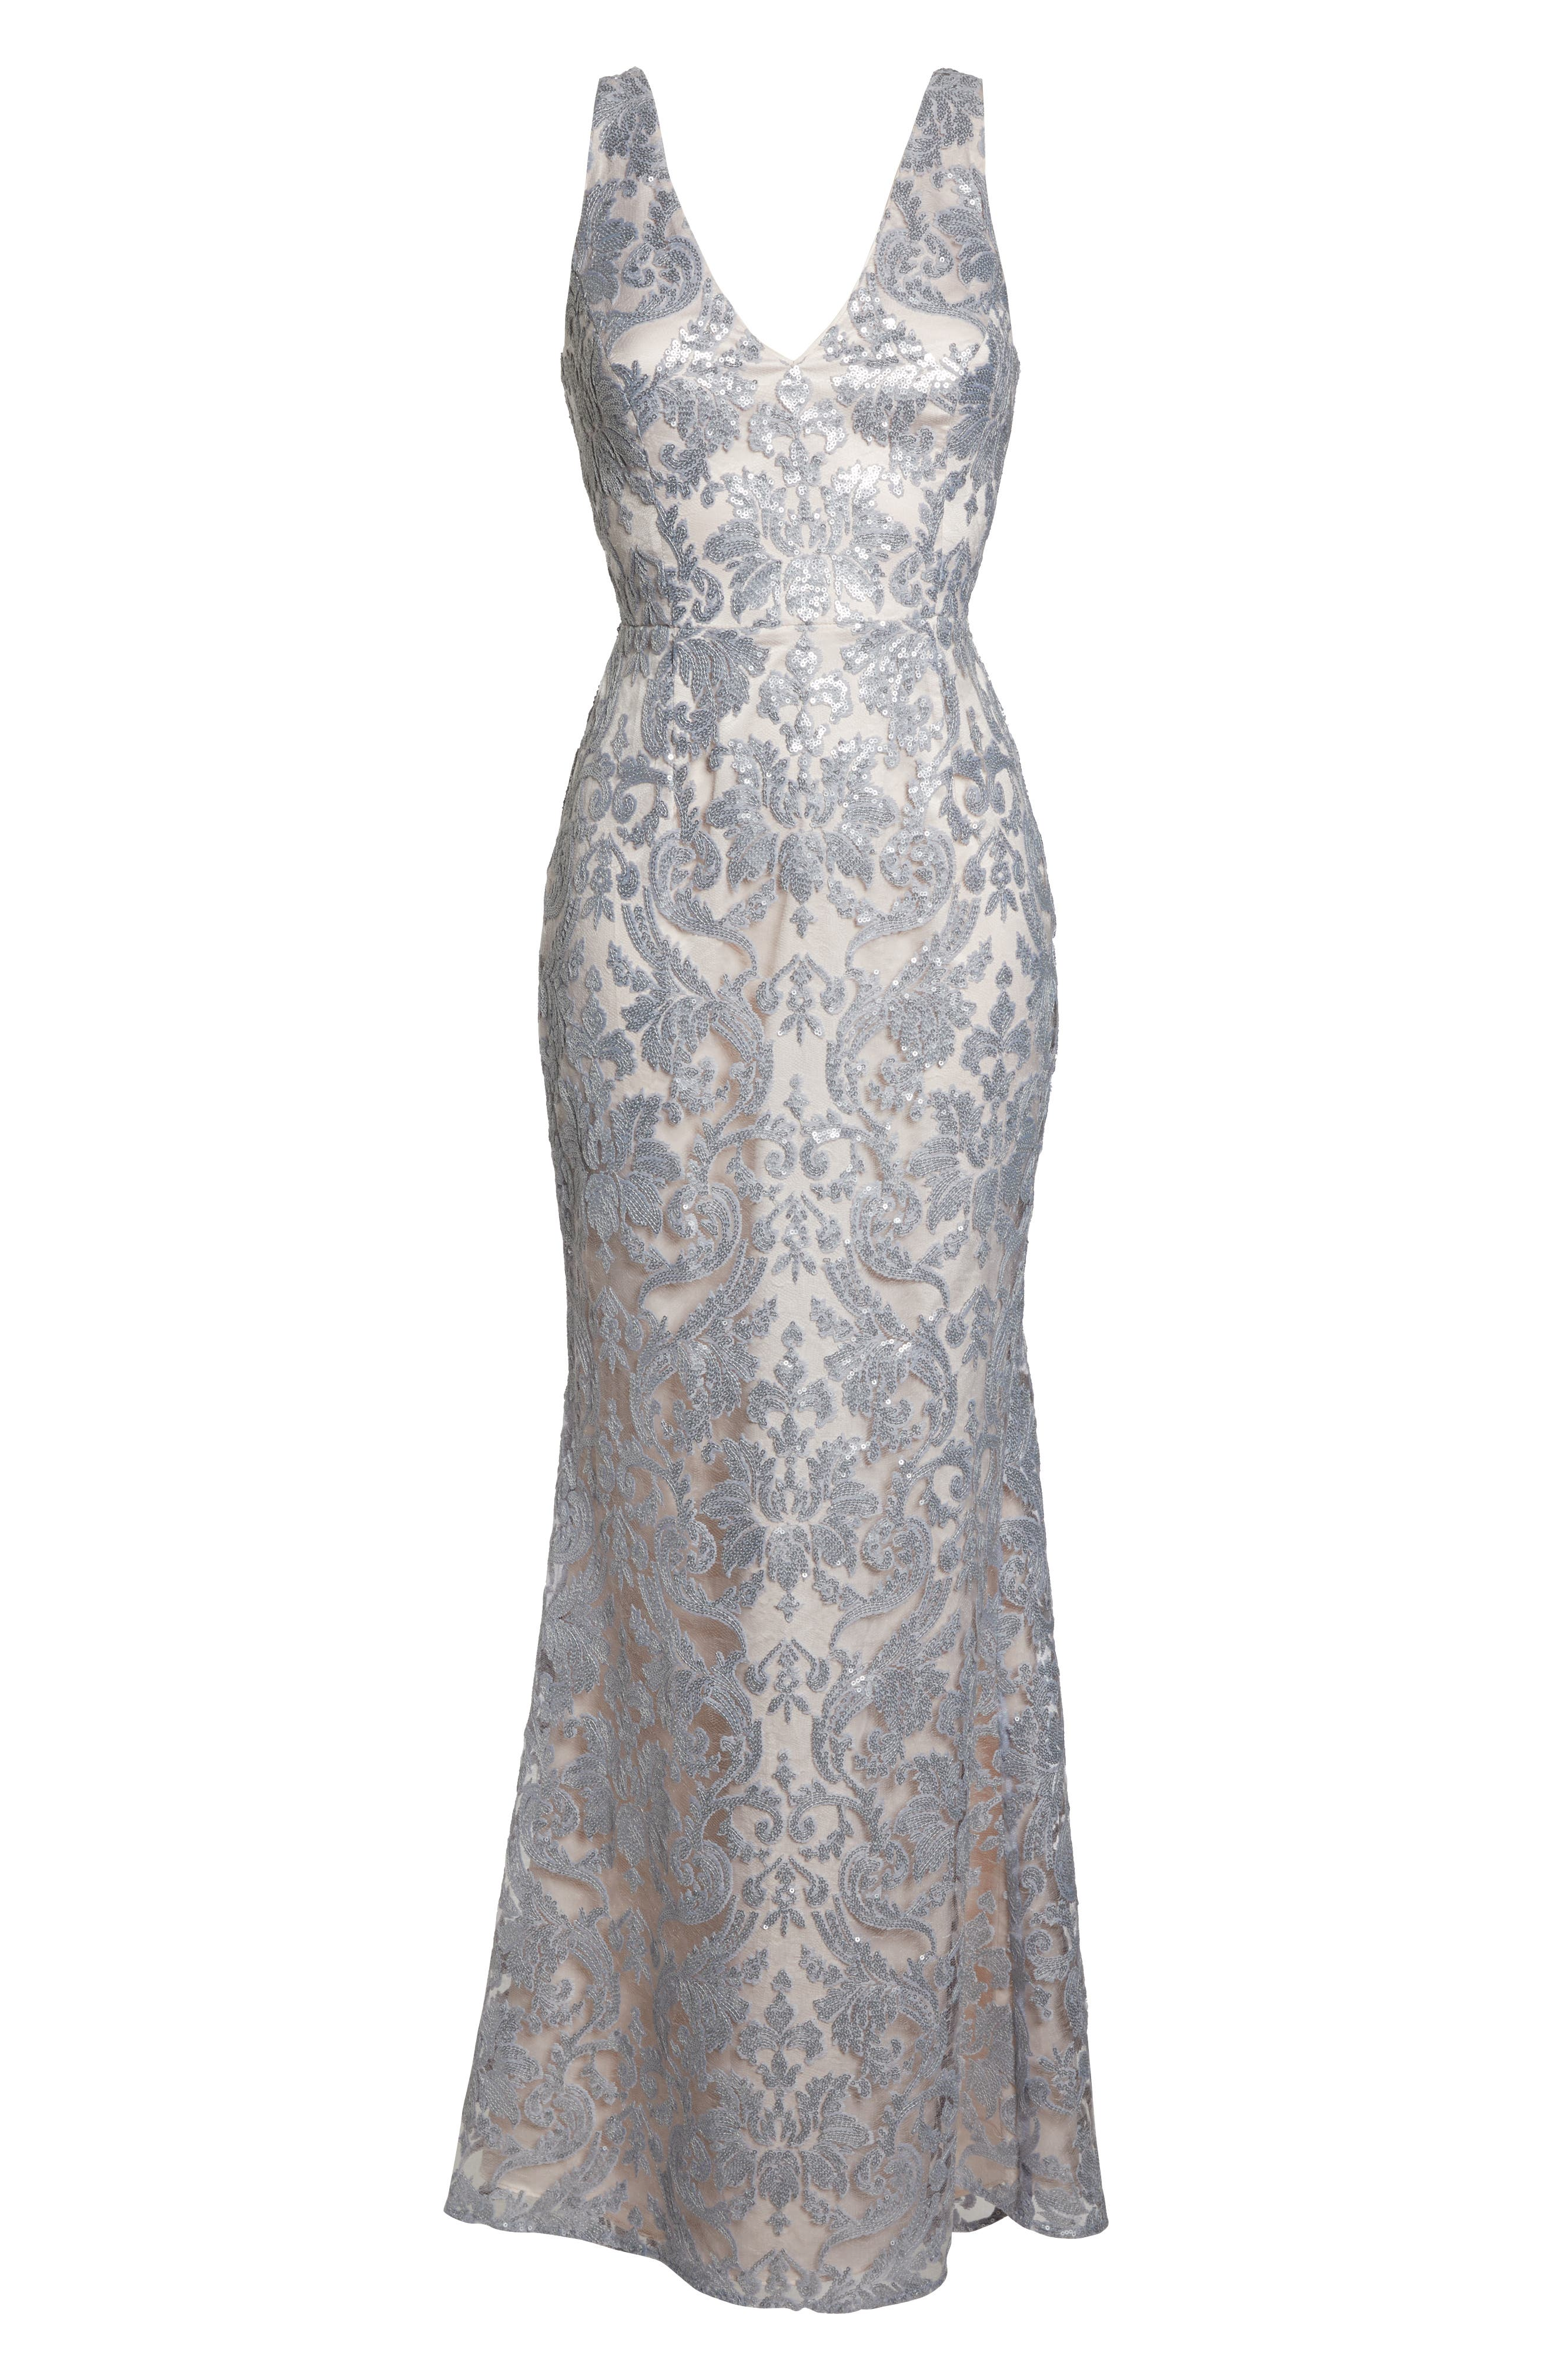 ELIZA J,                             Embroidered Evening Dress,                             Alternate thumbnail 7, color,                             SILVER